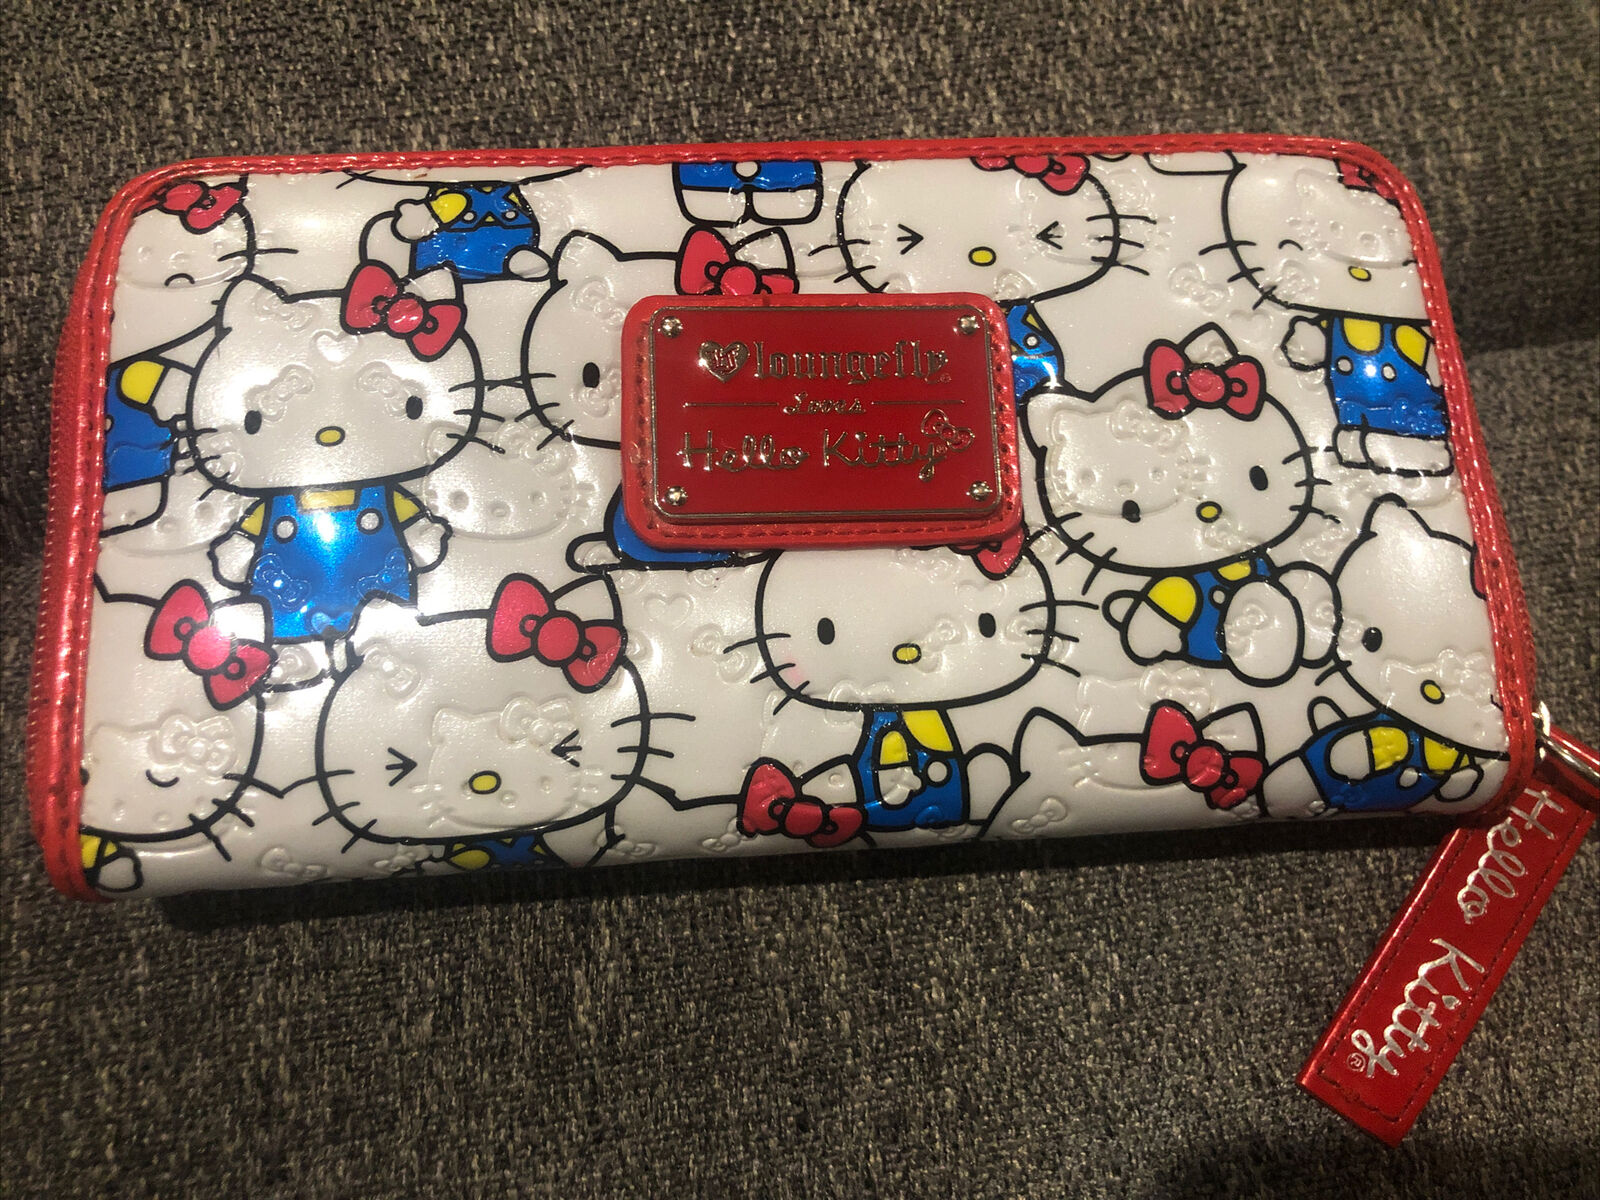 Hello Kitty Wallet Loungefly, vintage Authentic And Rare! White, Red And Blue